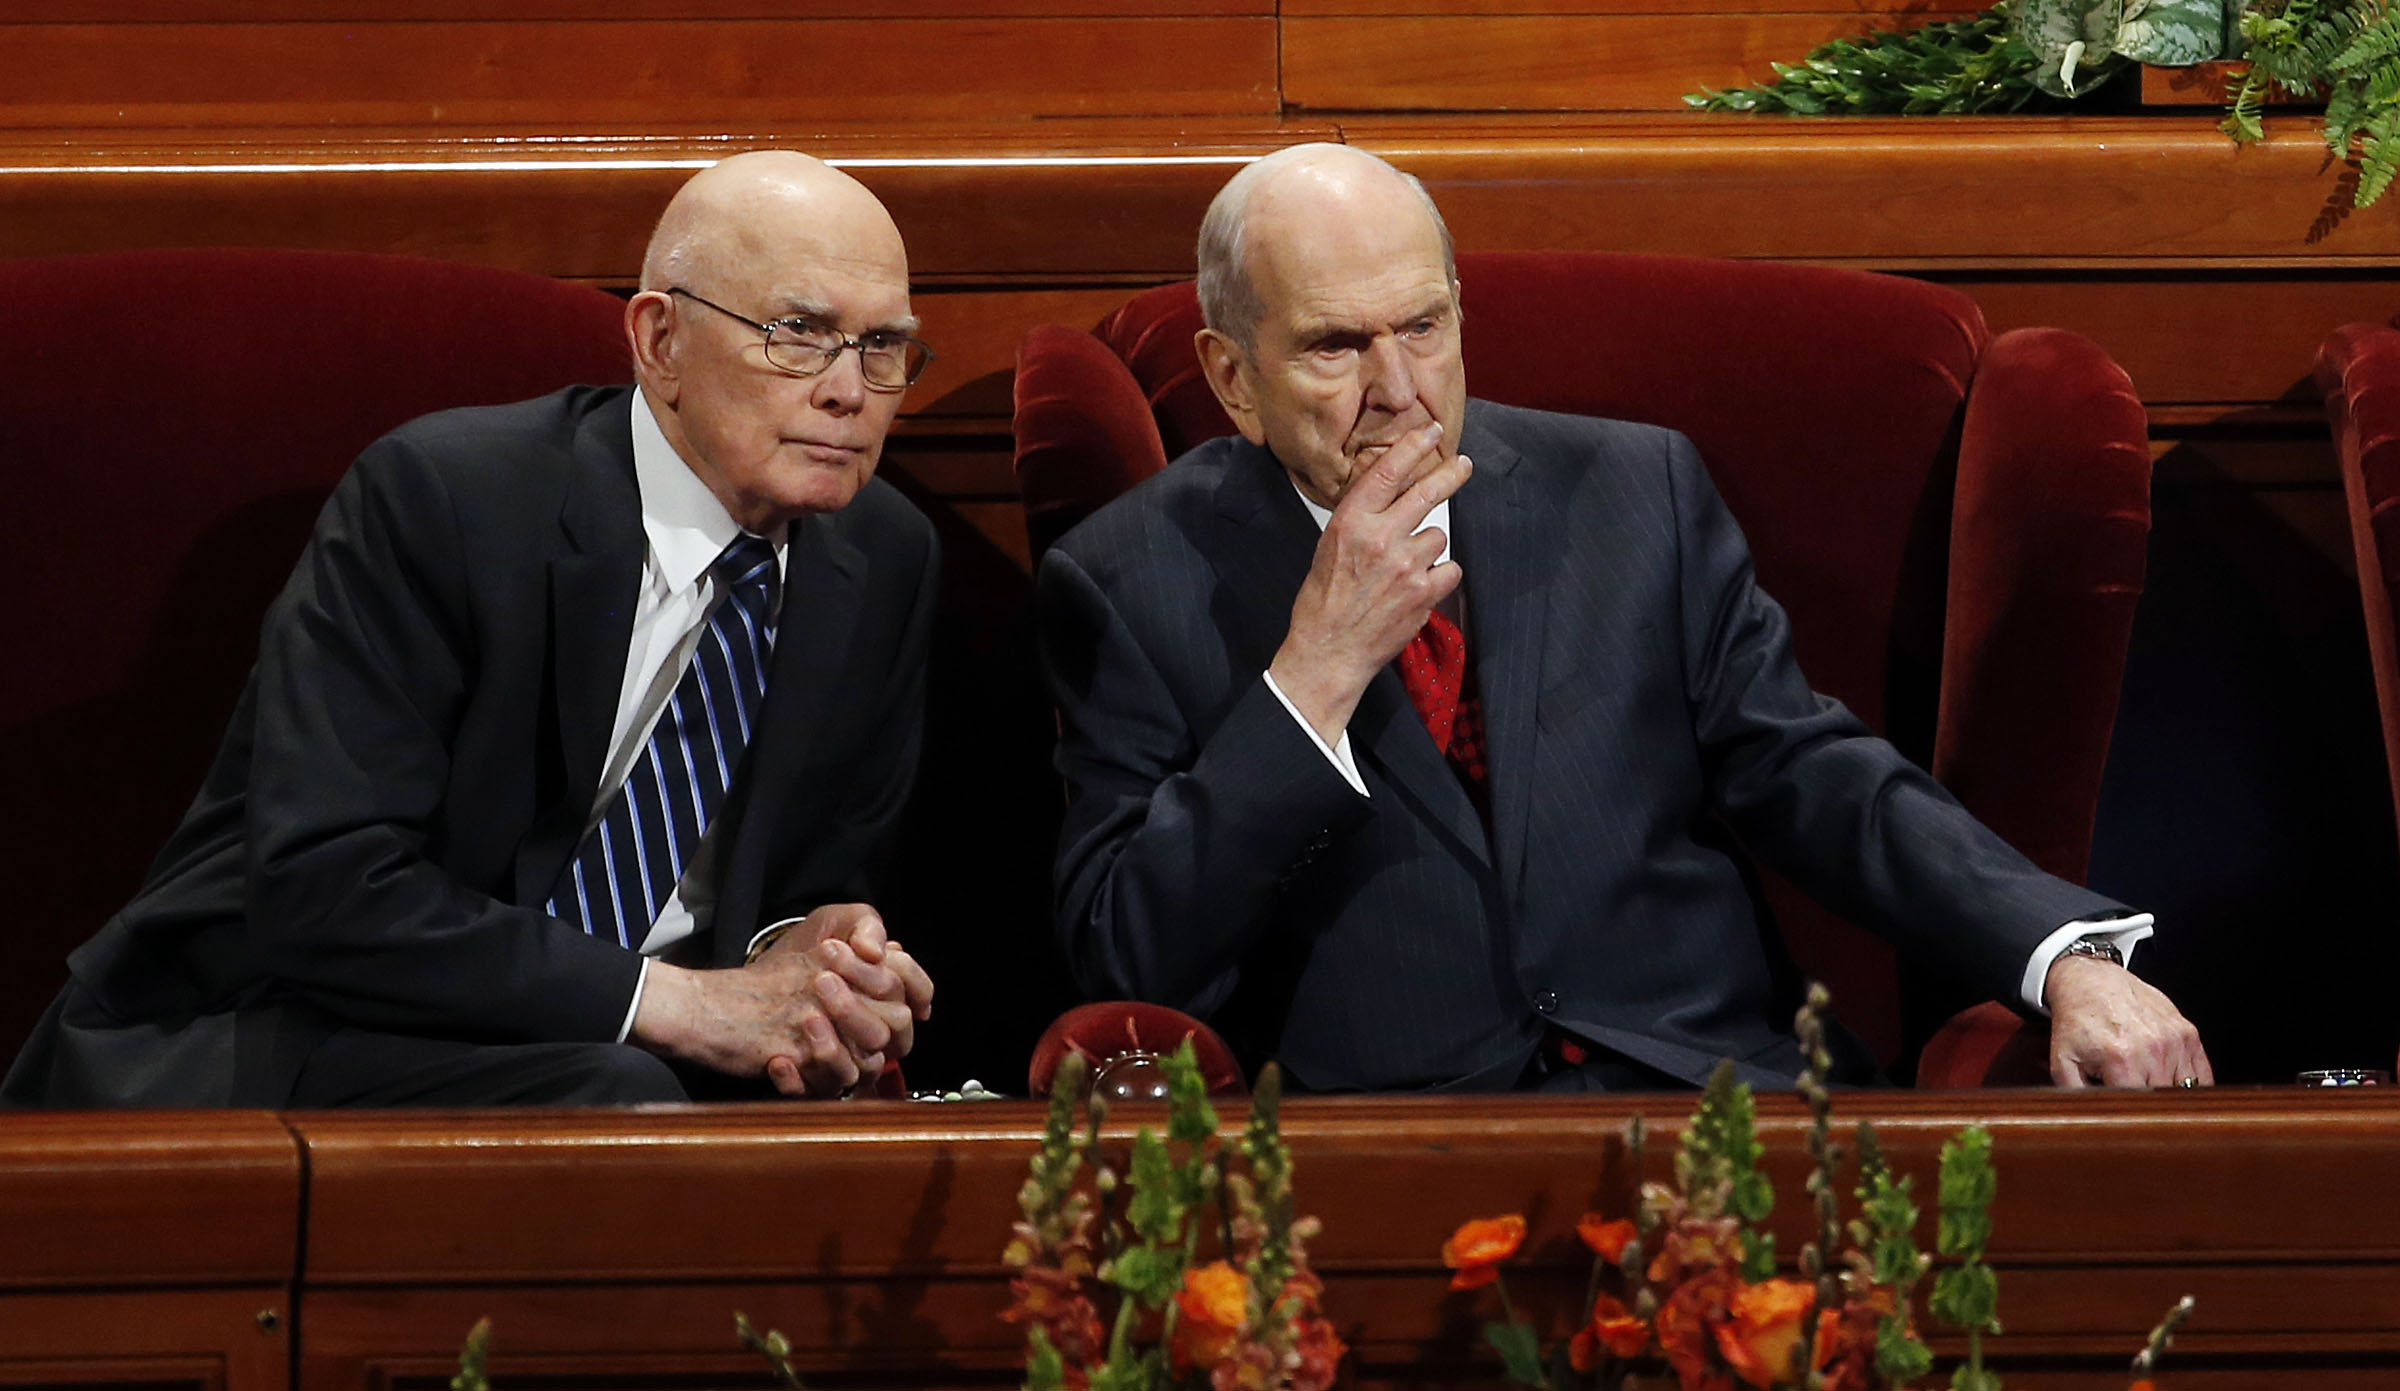 President Russell M. Nelson of The Church of Jesus Christ of Latter-day Saints, right, and President Dallin H. Oaks, first counselor in the First Presidency, confer at the beginning of the priesthood session of the 189th Annual General Conference in Salt Lake City on Saturday, April 6, 2019.